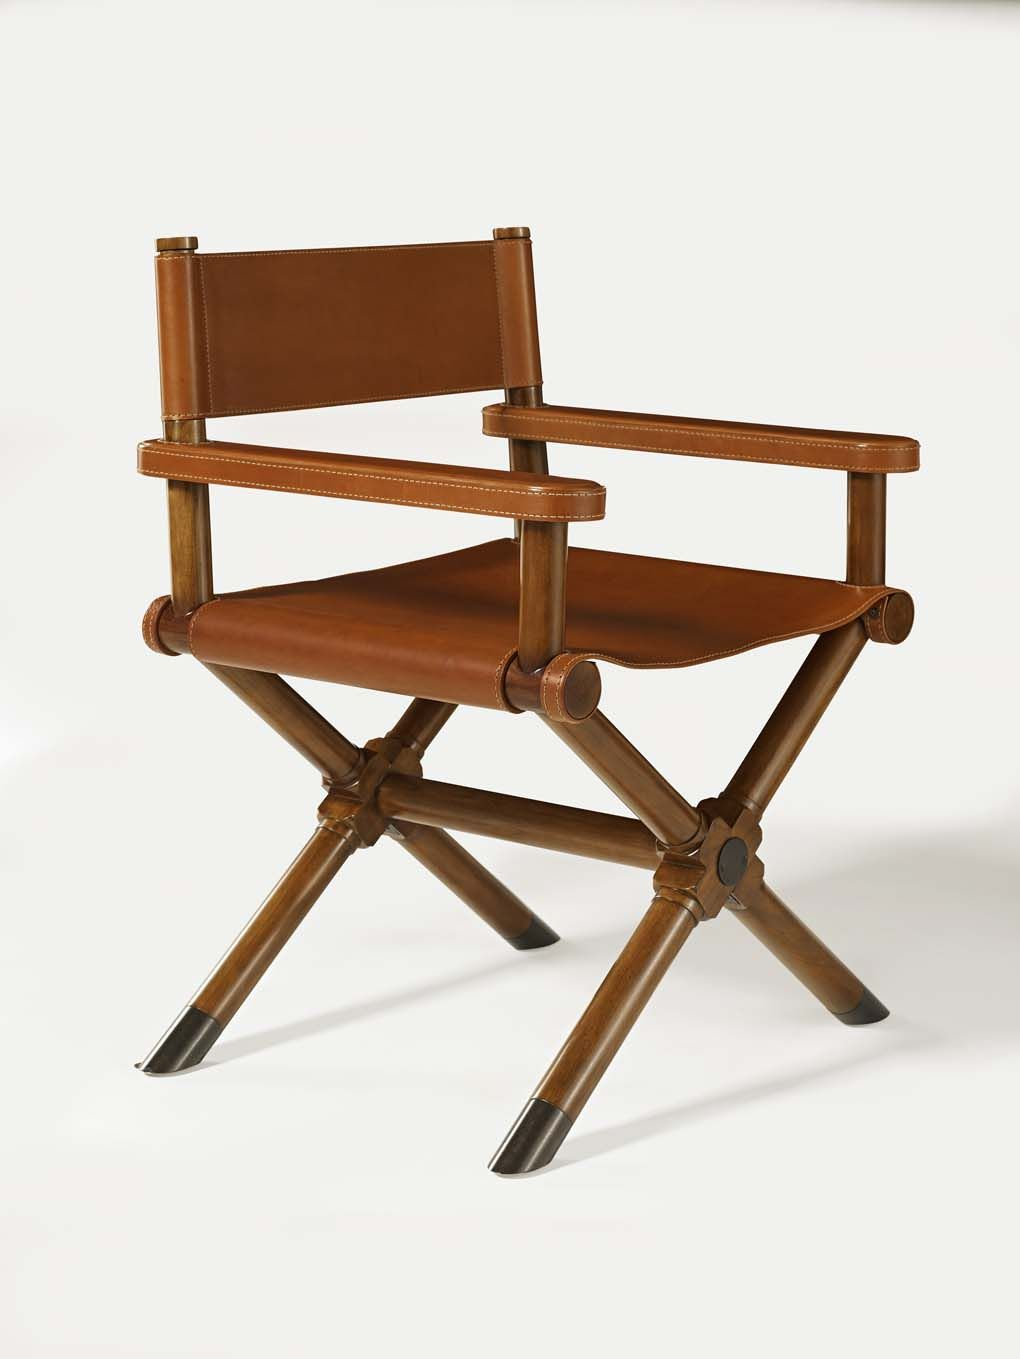 Ralph Lauren Home Directoru0027s Chair In Saddle Leather And A Cherry Wood Frame